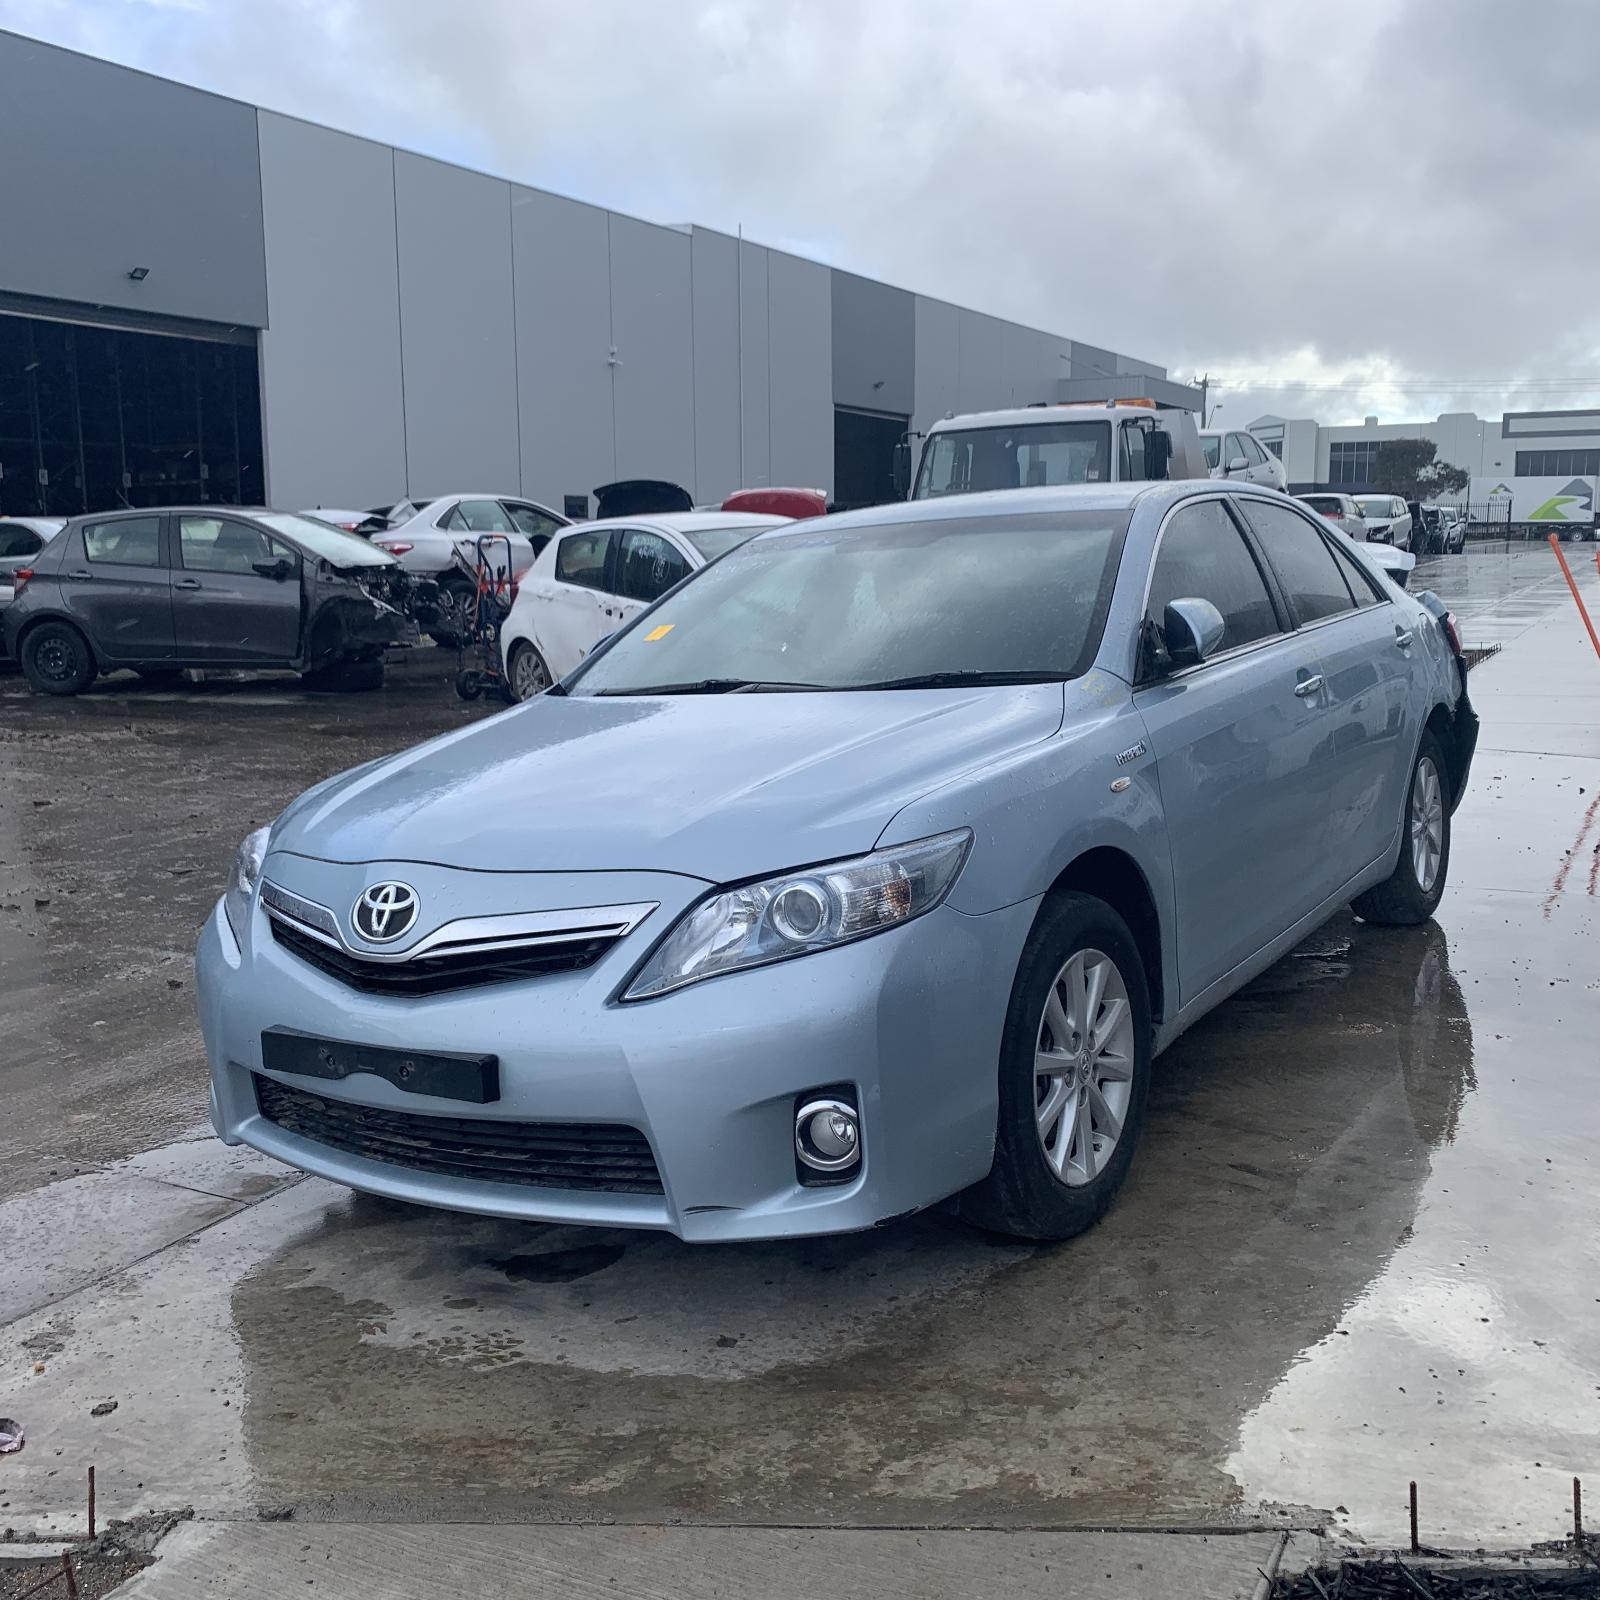 Toyota CAMRY AHV40 ALTISE 2AZ-FXE 2.4L Engine Automatic FWD Transmission 06/06 - 11/11